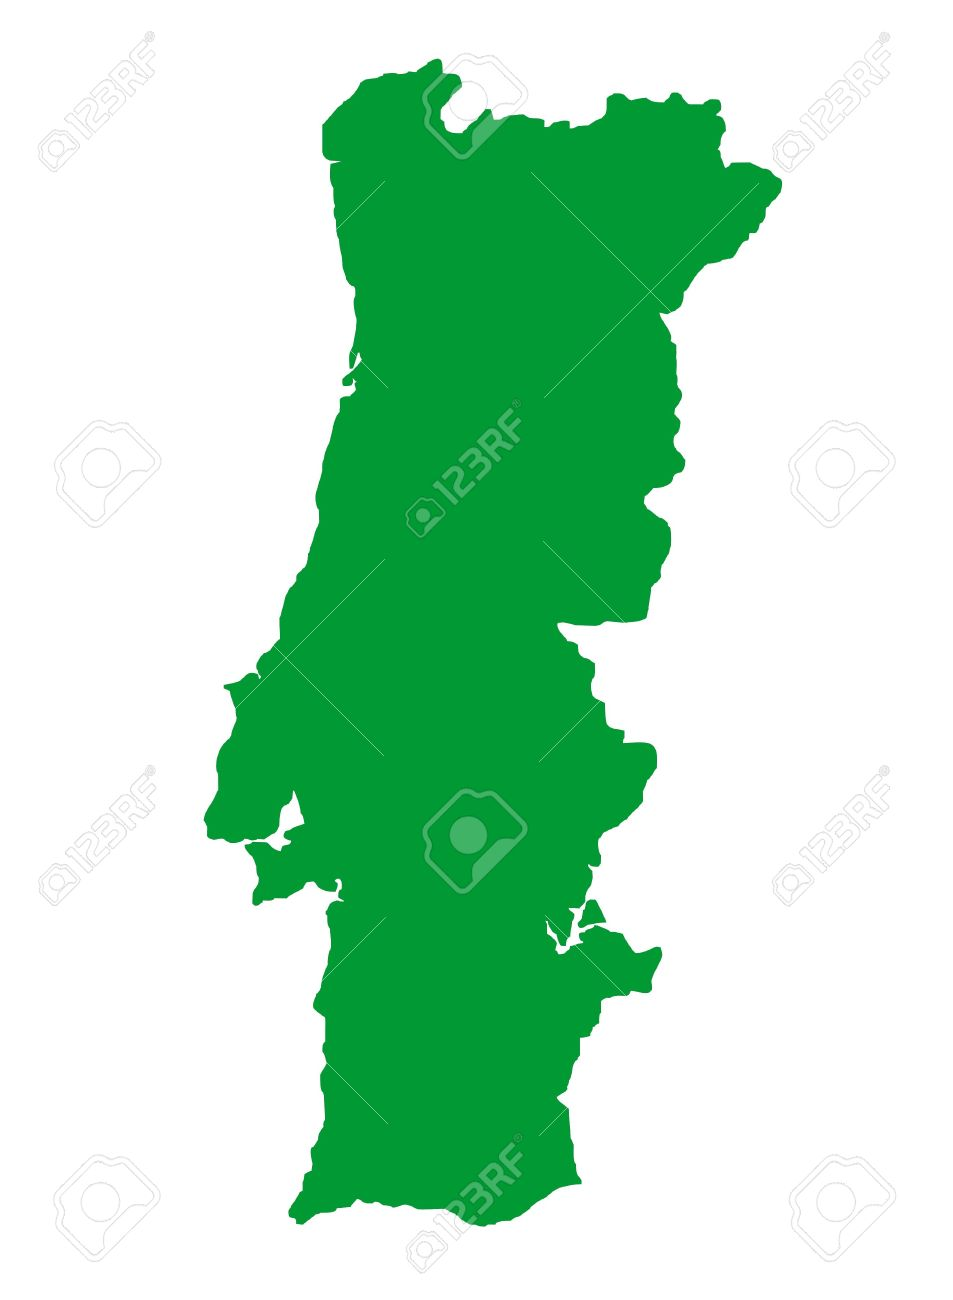 Outline Map Of Country Of Portugal In Black Isolated On White - Portugal map outline